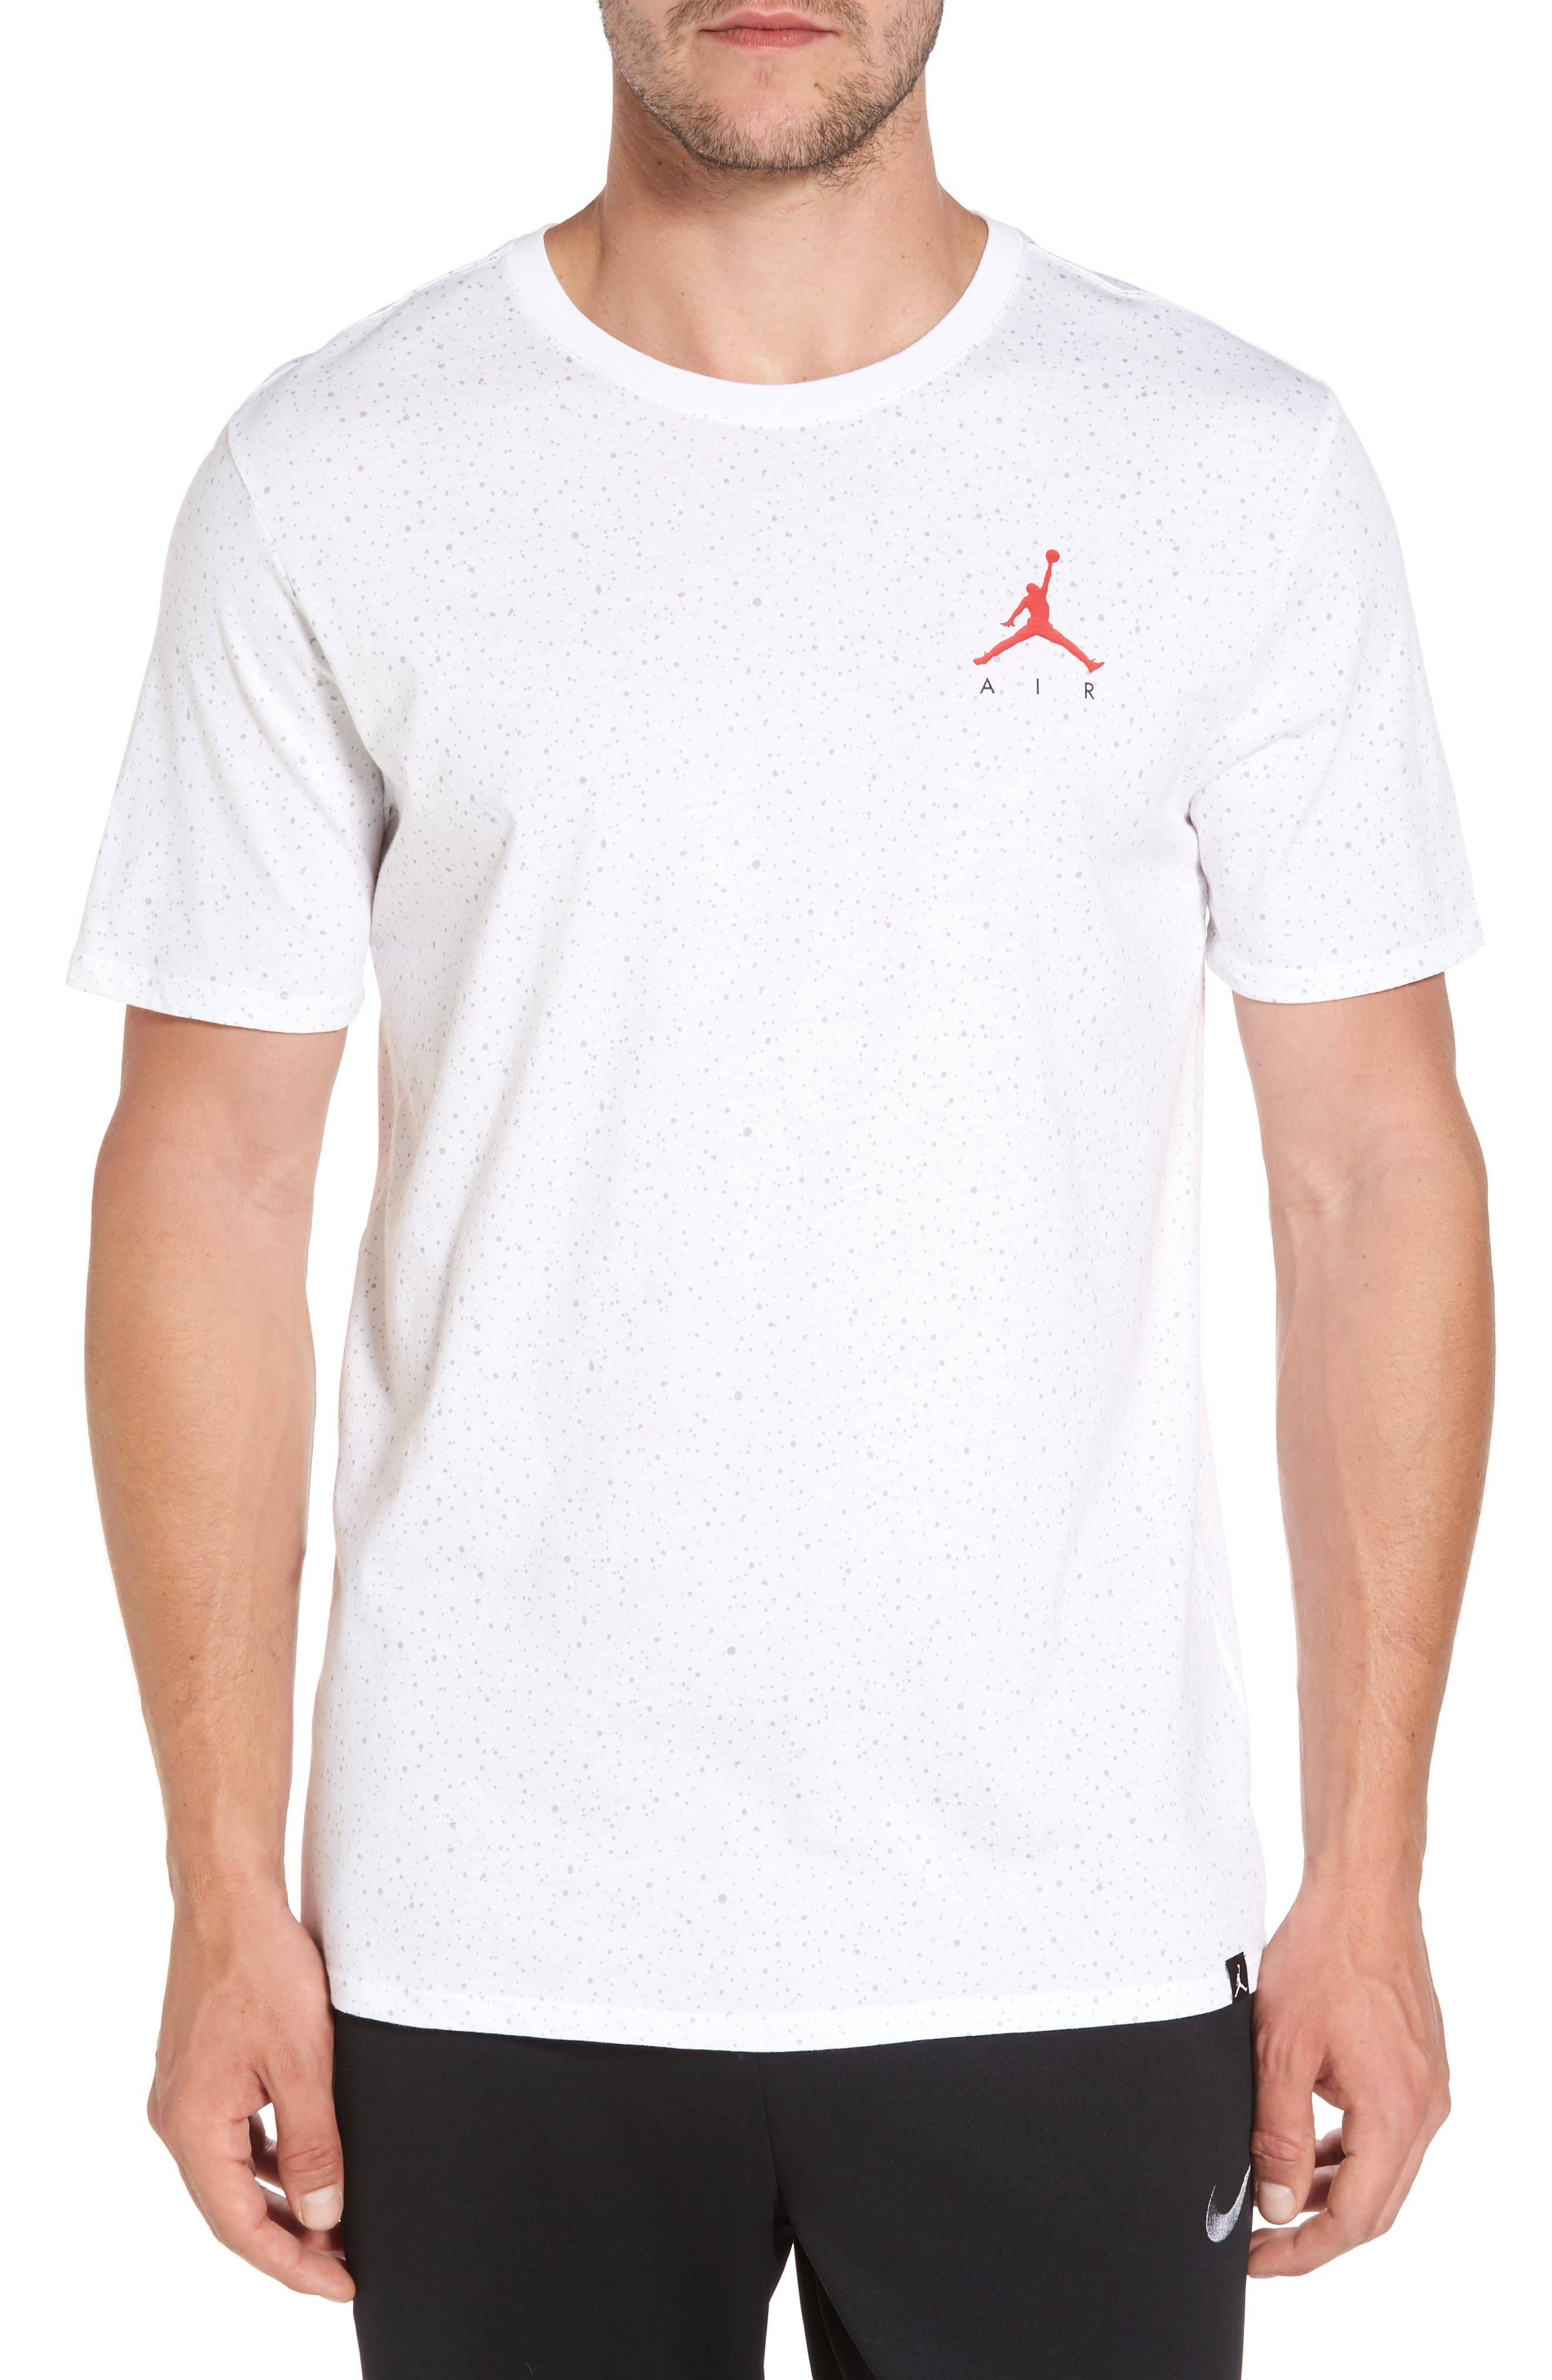 Sportswear Speckle T-Shirt,                         Main,                         color, White/ University Red